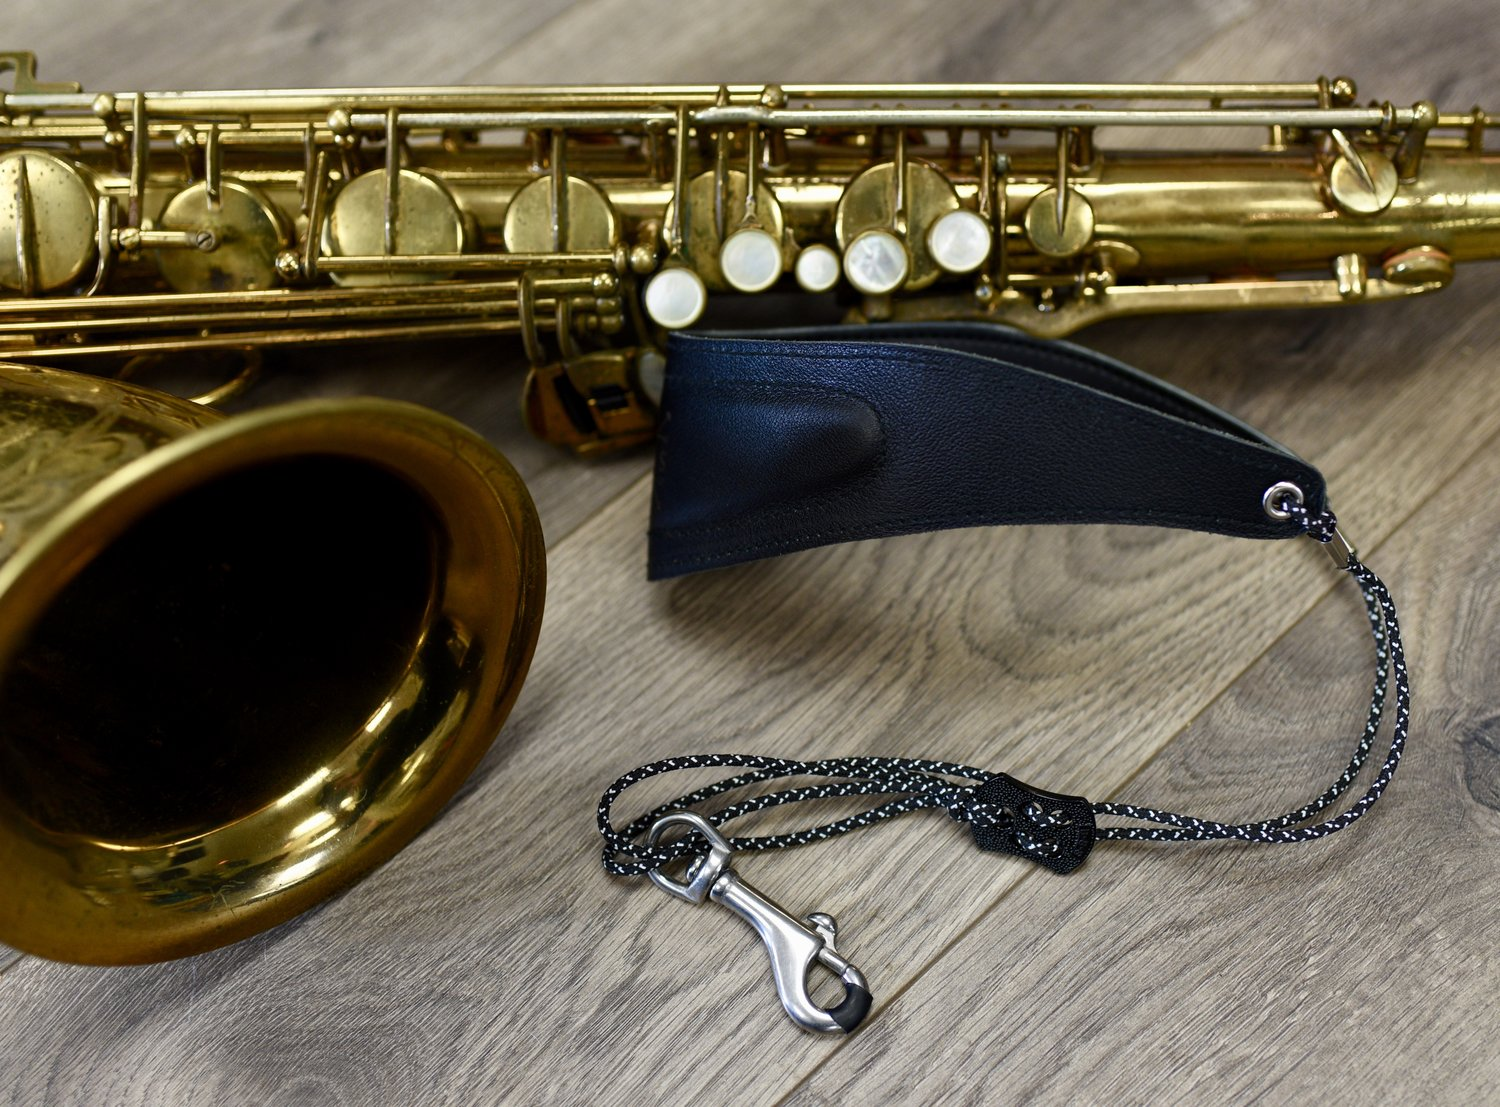 Boston Sax Shop 'Newbury Street' neck strap